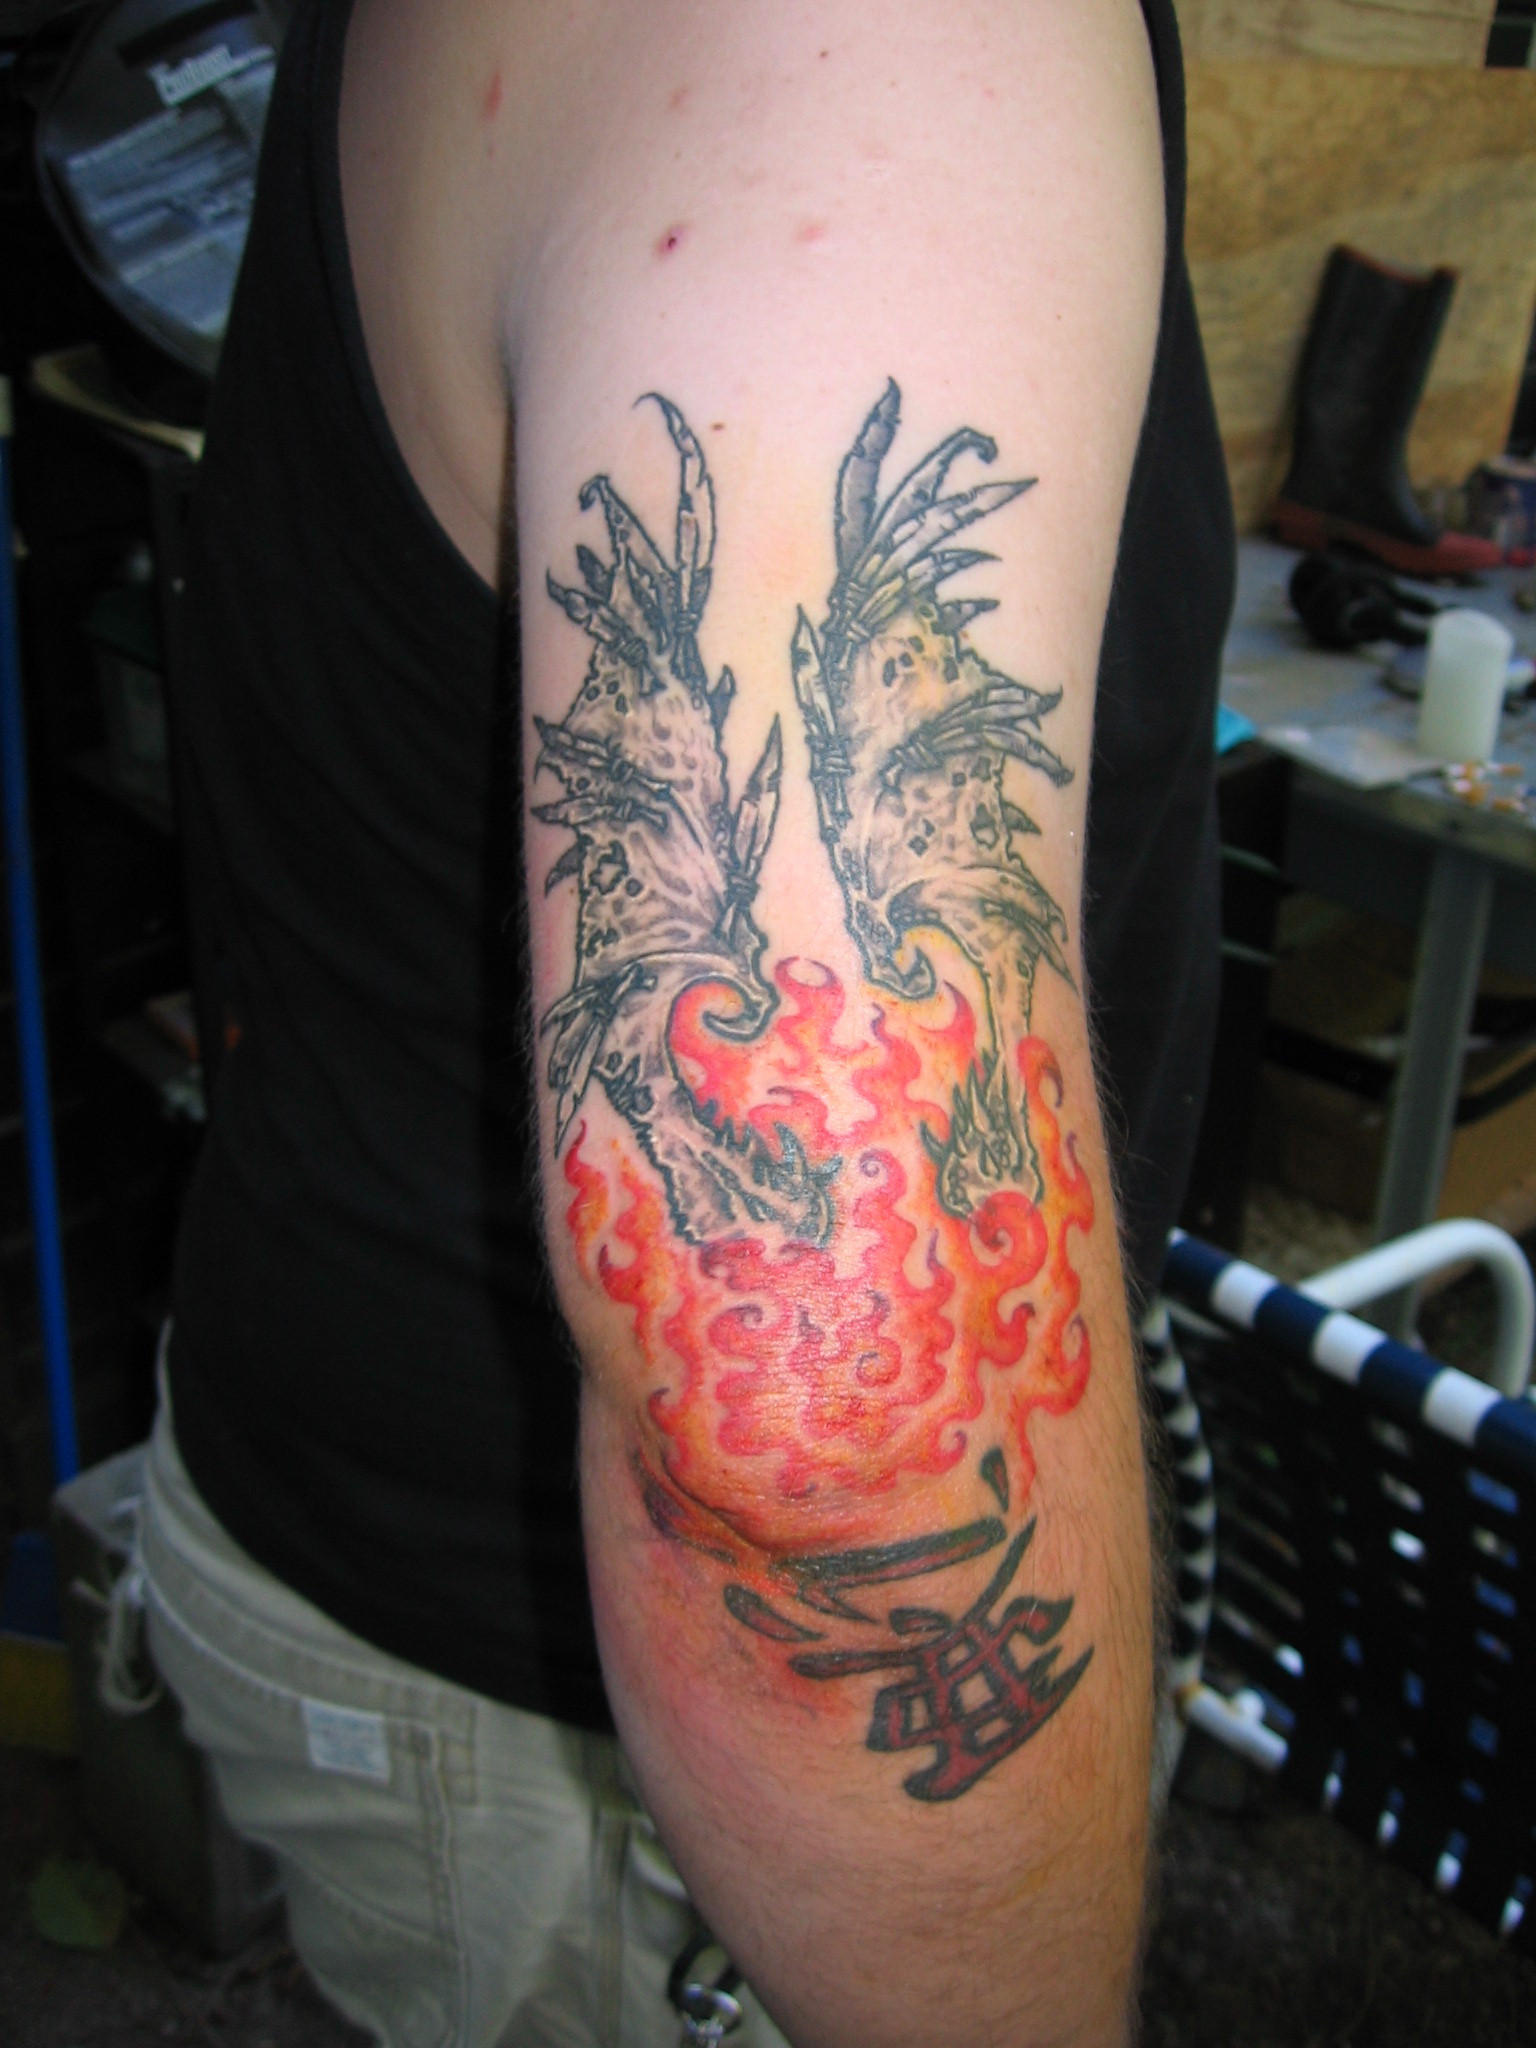 Pin heaven or hell by pain on pinterest for Battle between heaven and hell tattoo